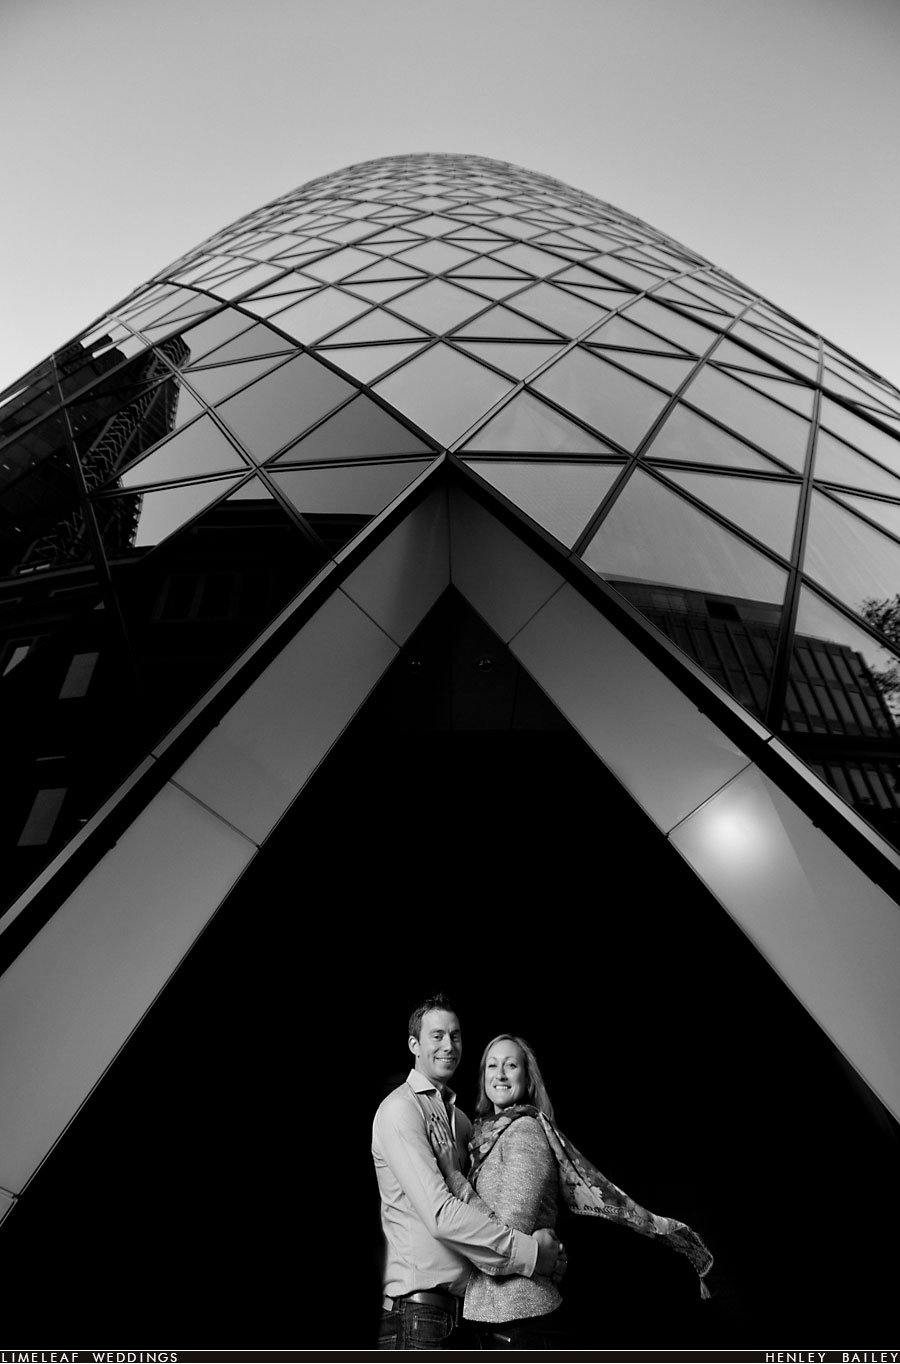 30 St Mary Axe, Gherkin, London wedding photo